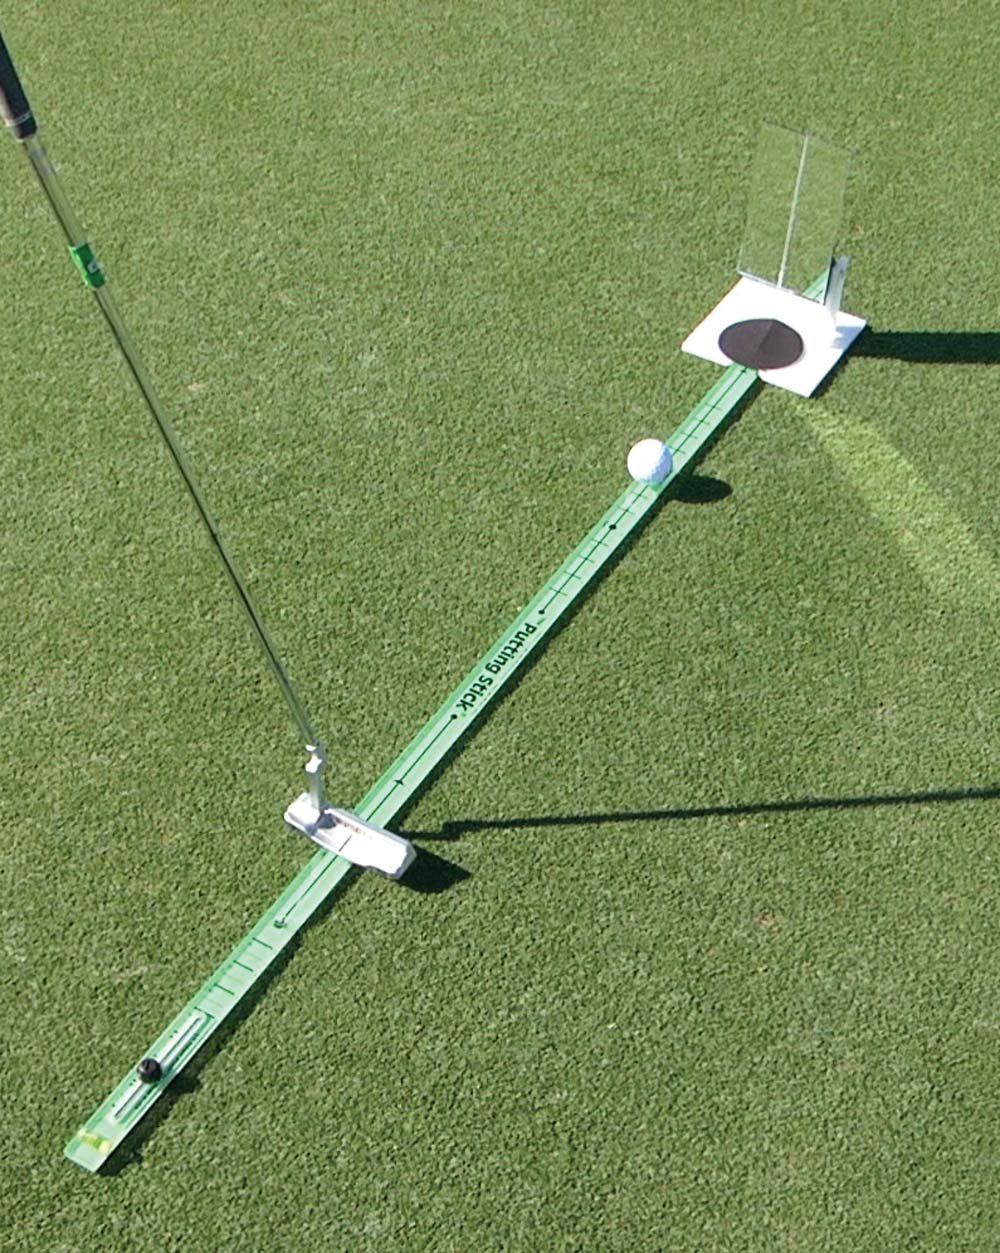 TPK Golf Training Aids: 'Putting Stick'; Golf Swing Trainer for Putting Green Eyeline Alignment and Putt Speed by TPK